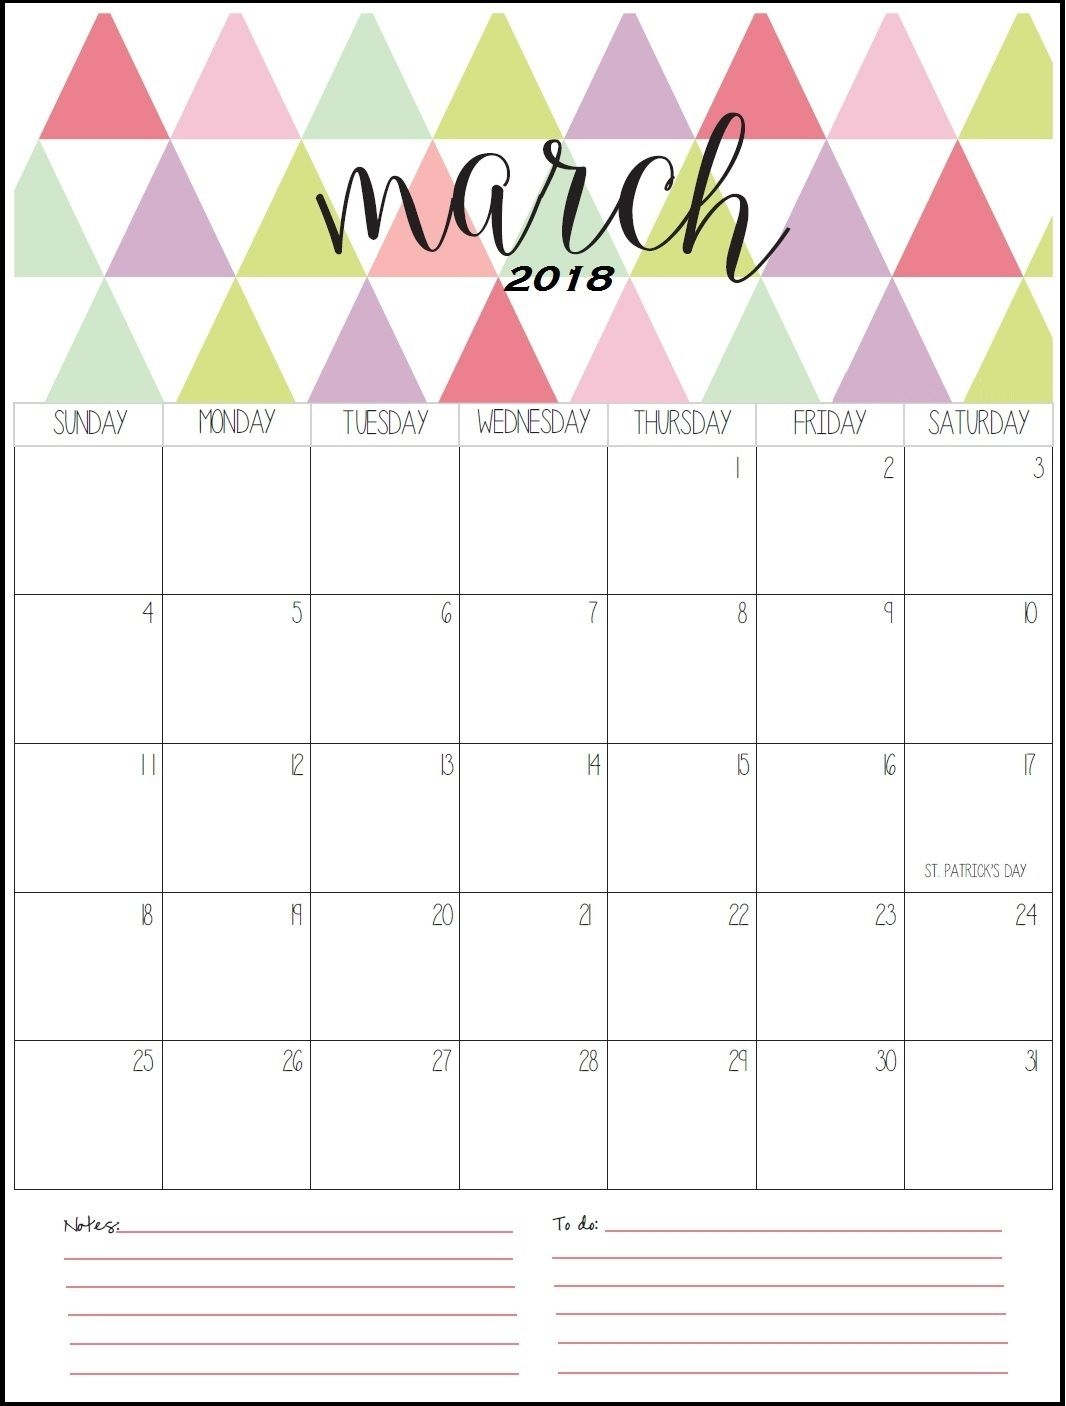 stylish march 2018 printable calendar maxcalendars pinterest 2018 Stylish Calendar Templates erdferdf